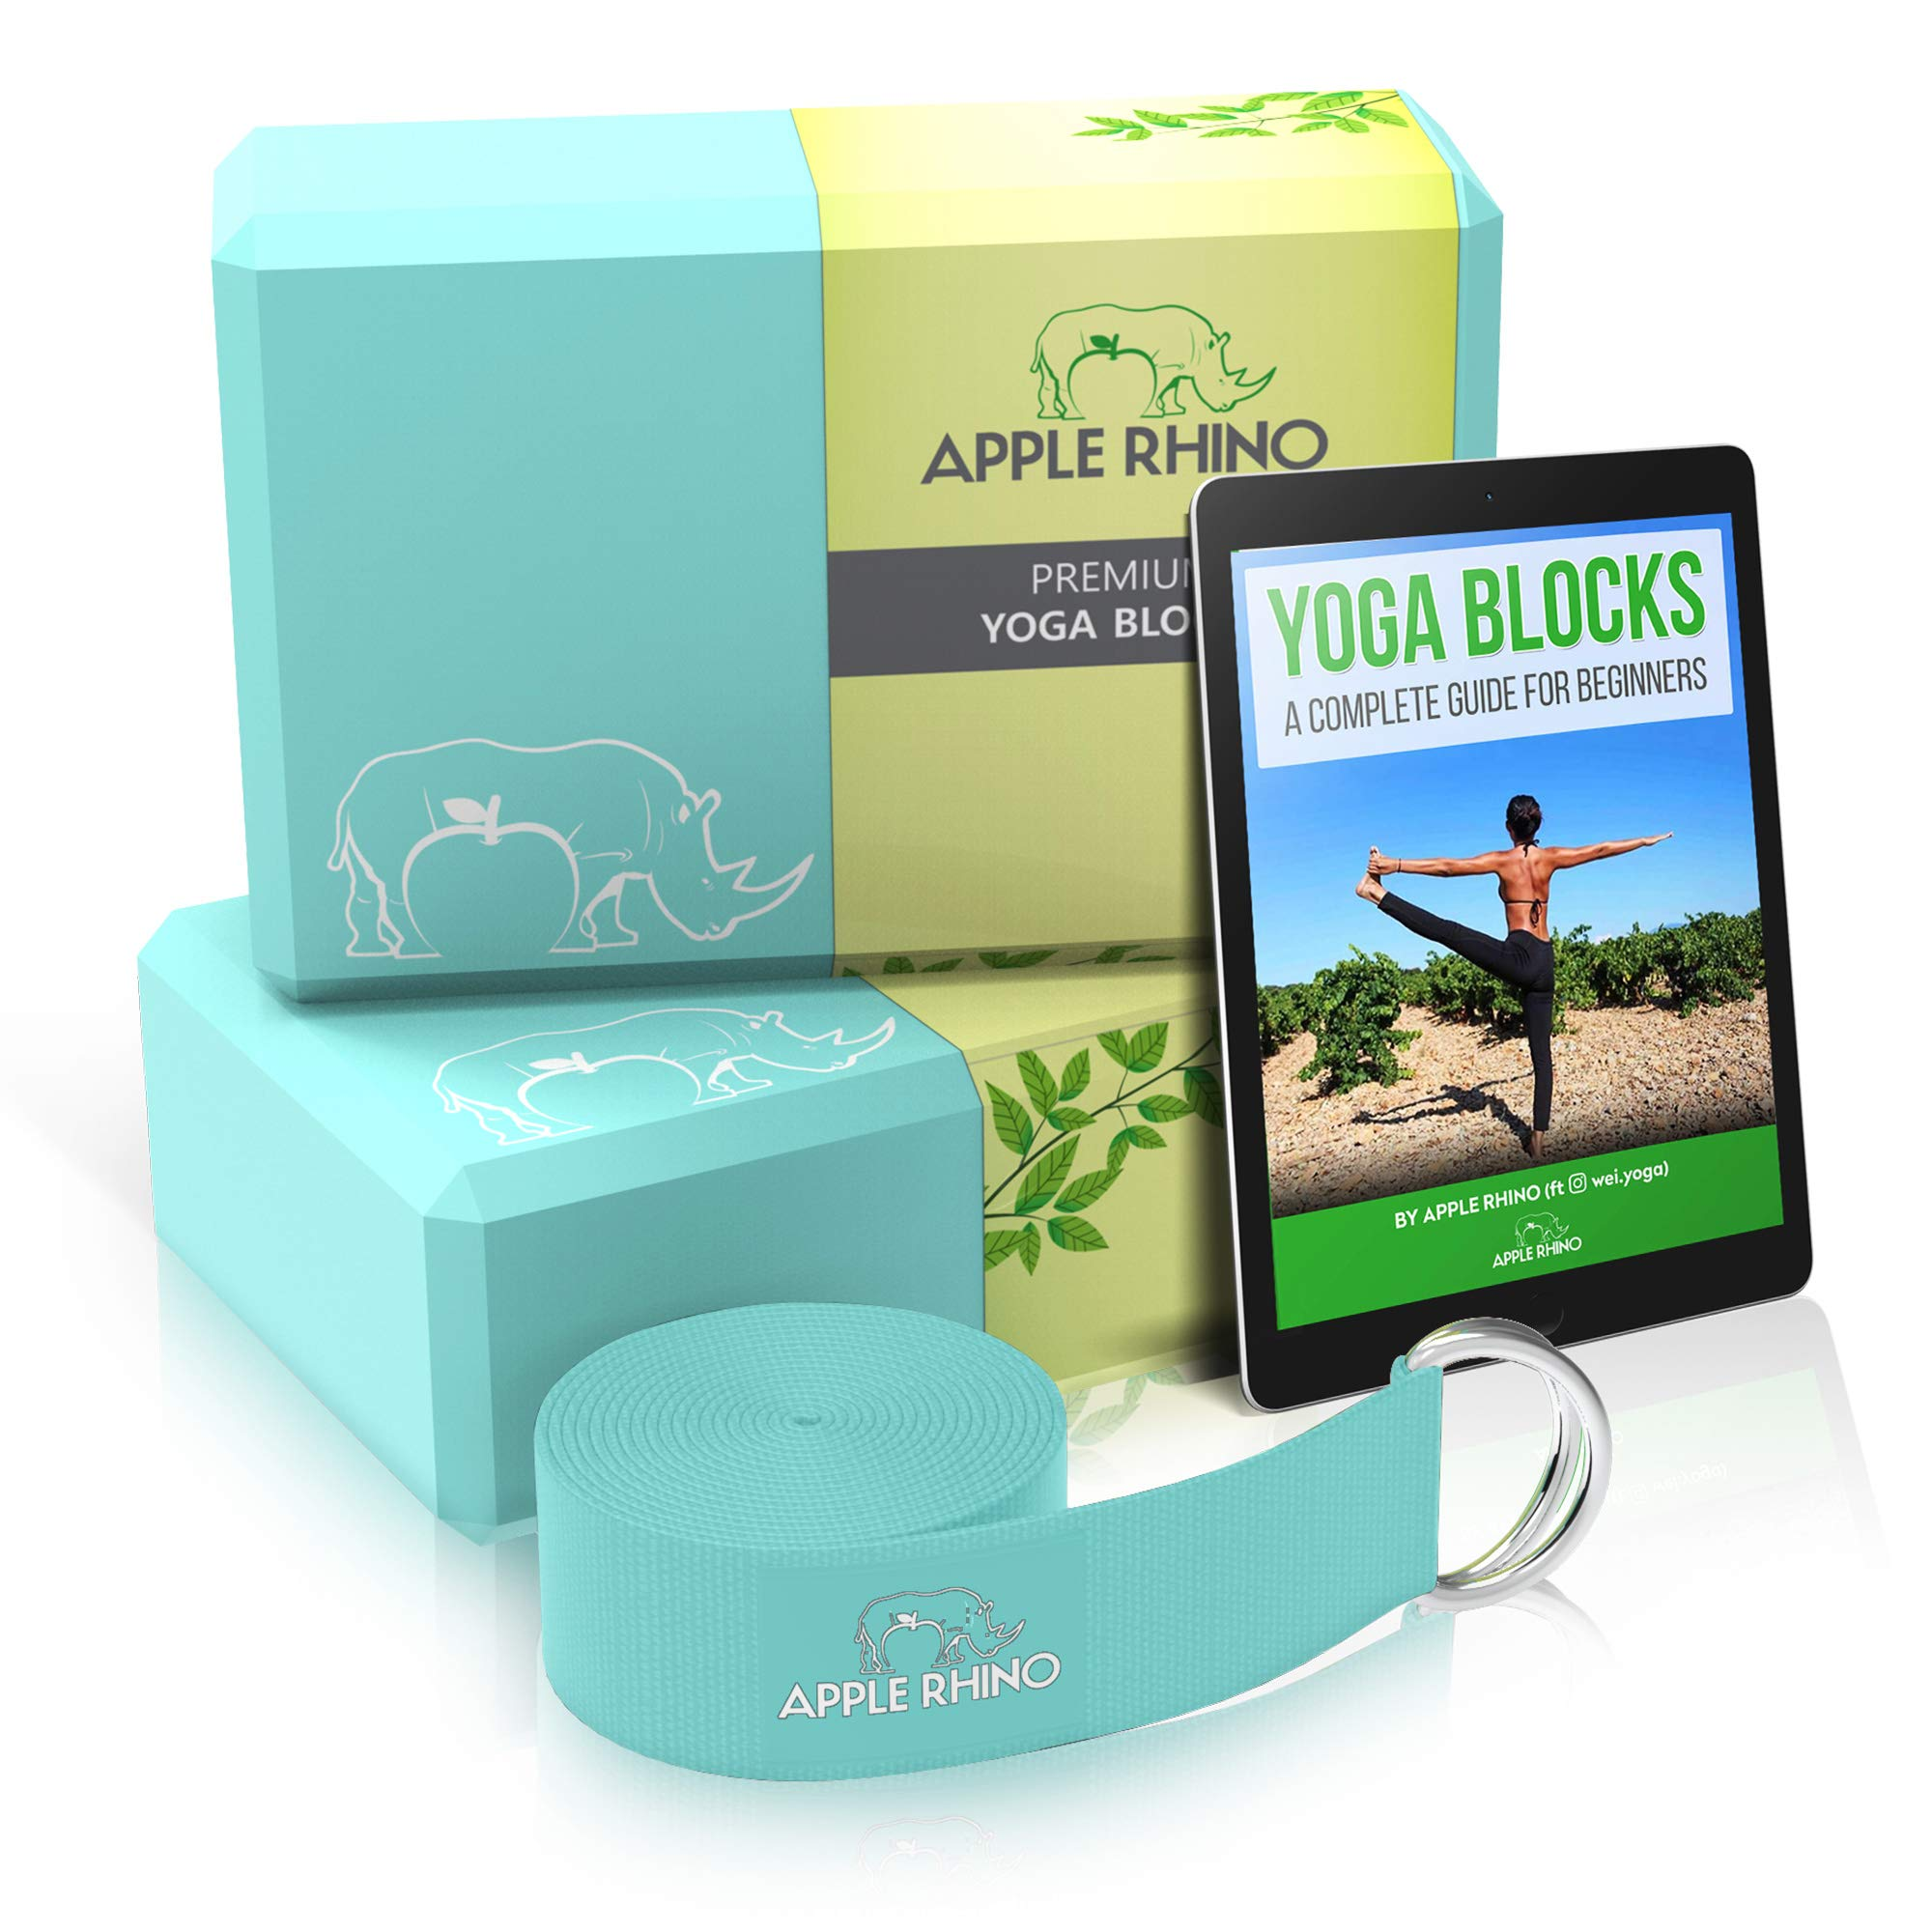 APPLE RHINO Premium 2nr Yoga Blocks and Strap - Includes FREE e-Book; 2 pack high density yoga block with metal D ring cotton belt; provides Stability, Balance, Strength for yoga and pilates practice